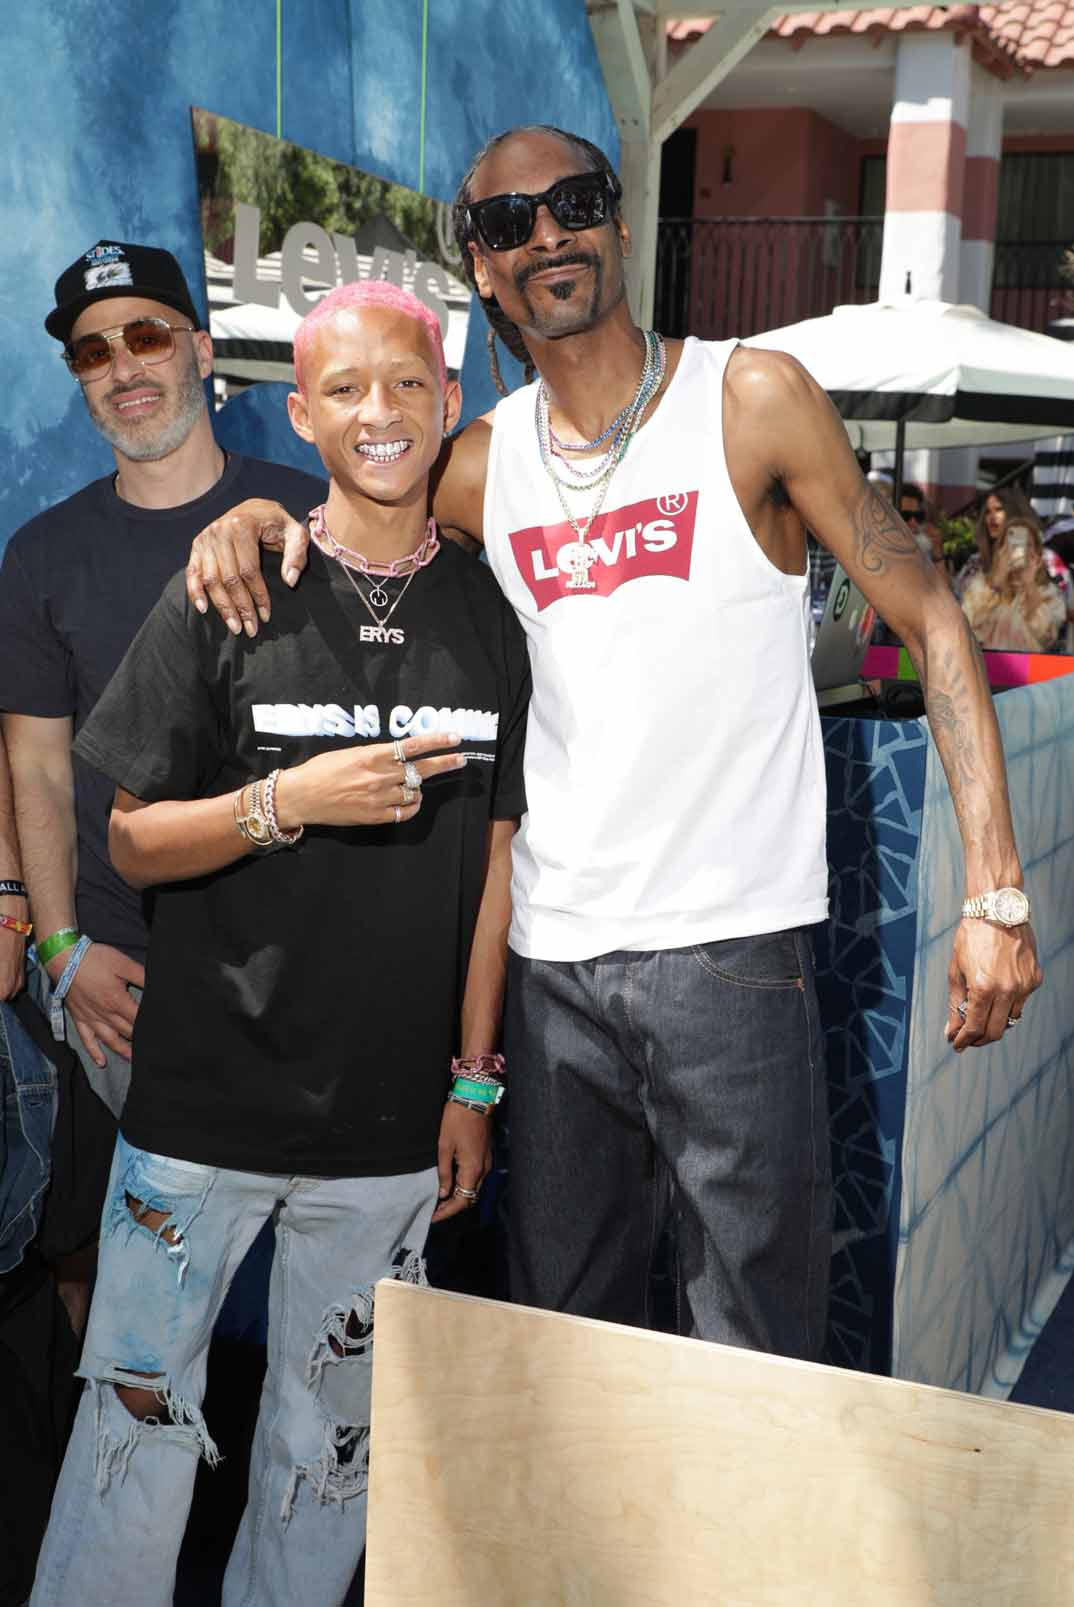 Jaden Smith, Snoop Dogg - Fiesta Levi's - Festival de Coachella